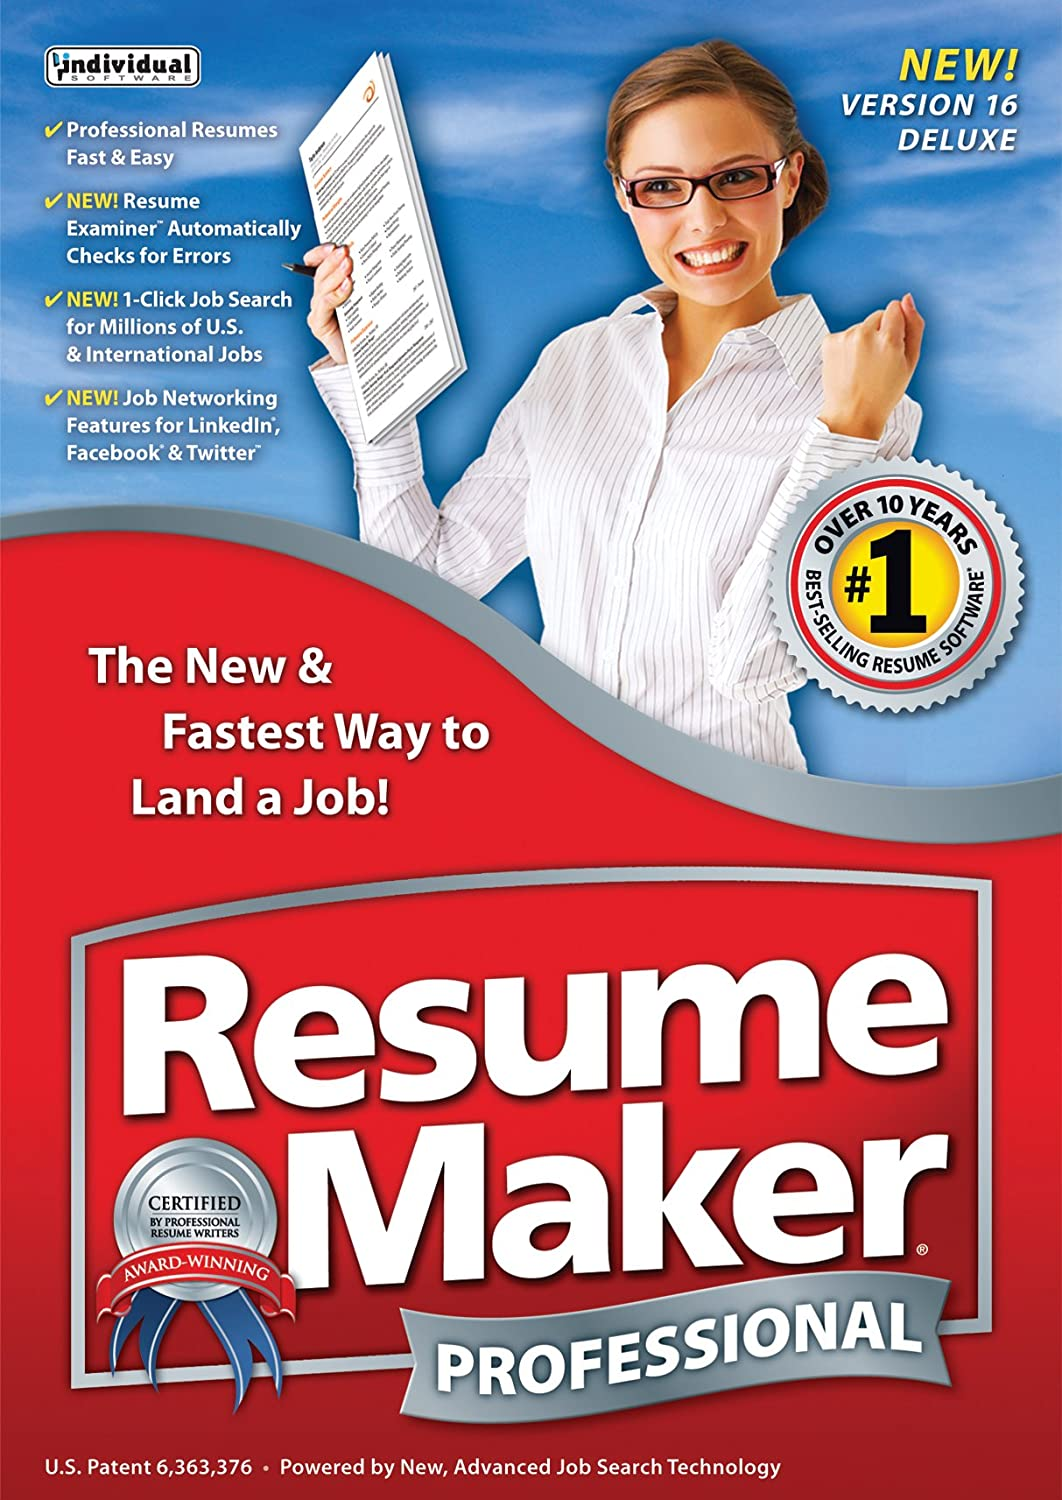 amazoncom resumemaker professional deluxe 16 download software - Resume Maker Professional Software Free Download